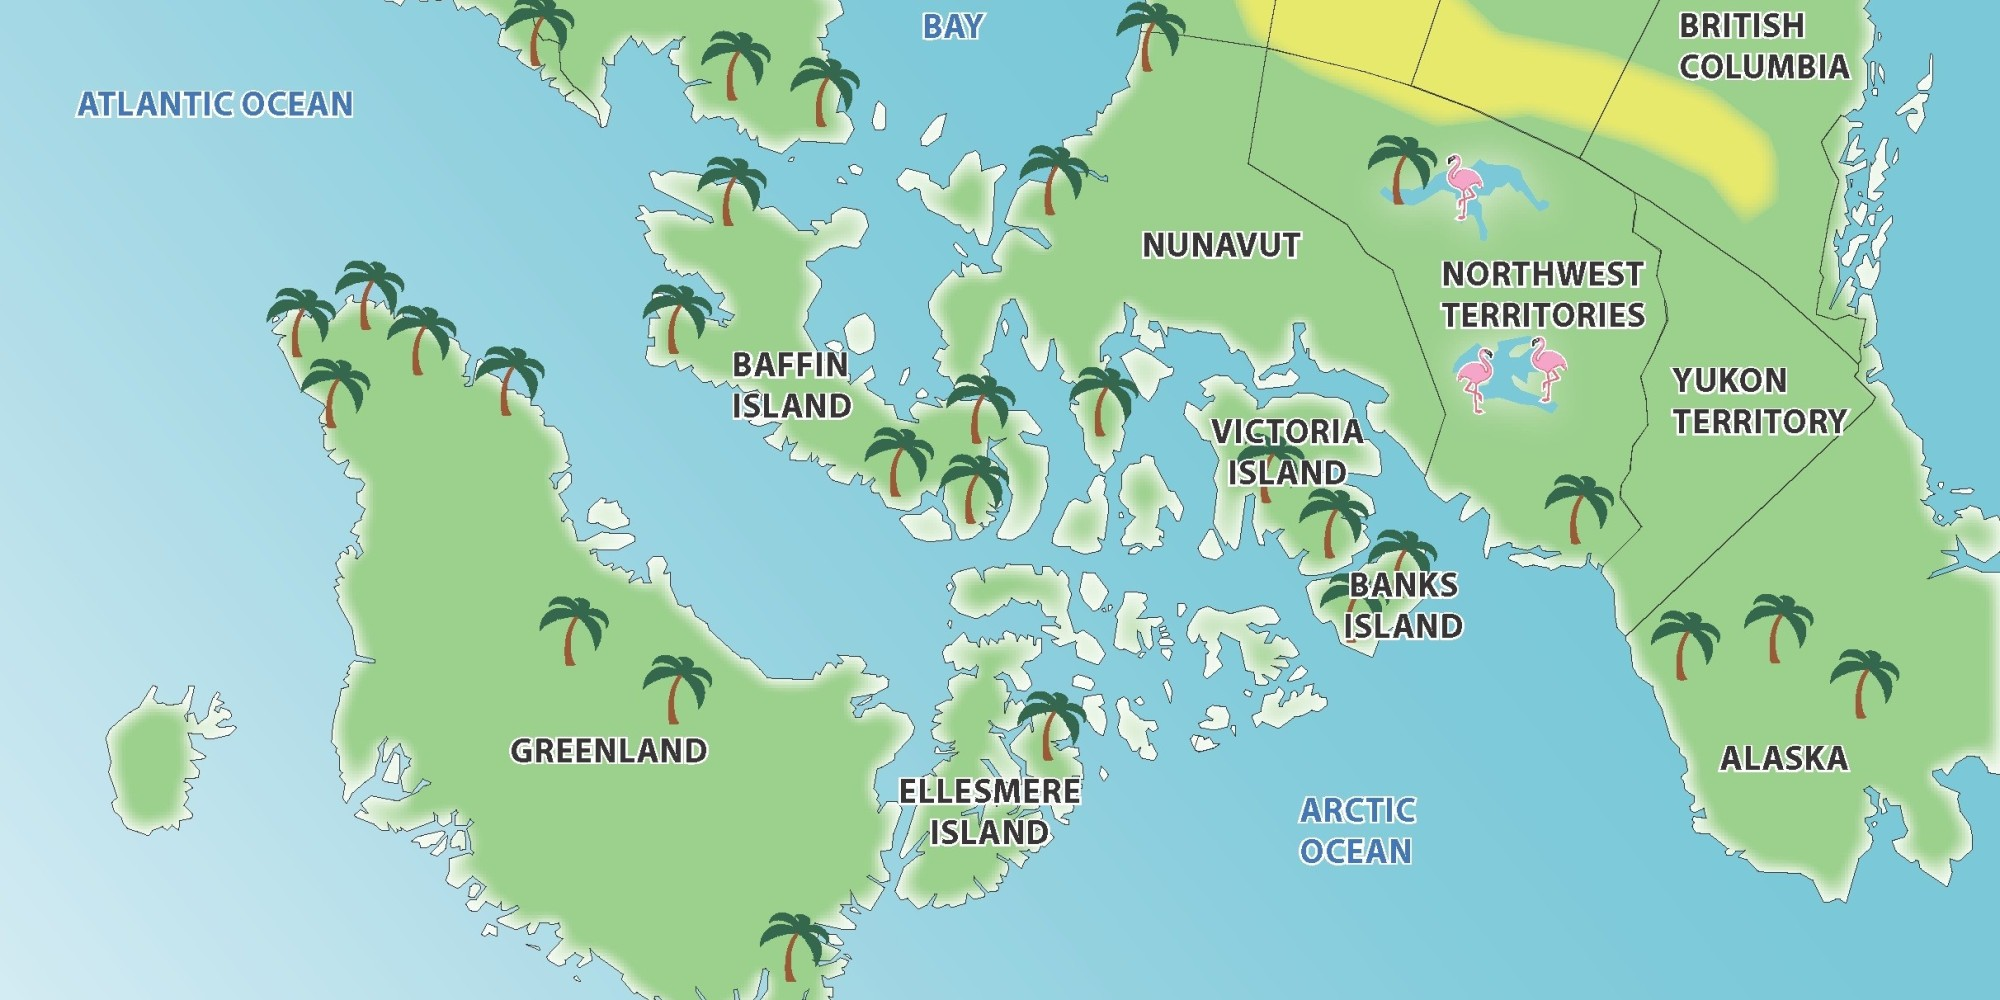 North America Map Of North America Policy Briefs English Water - Arctic ocean on us map